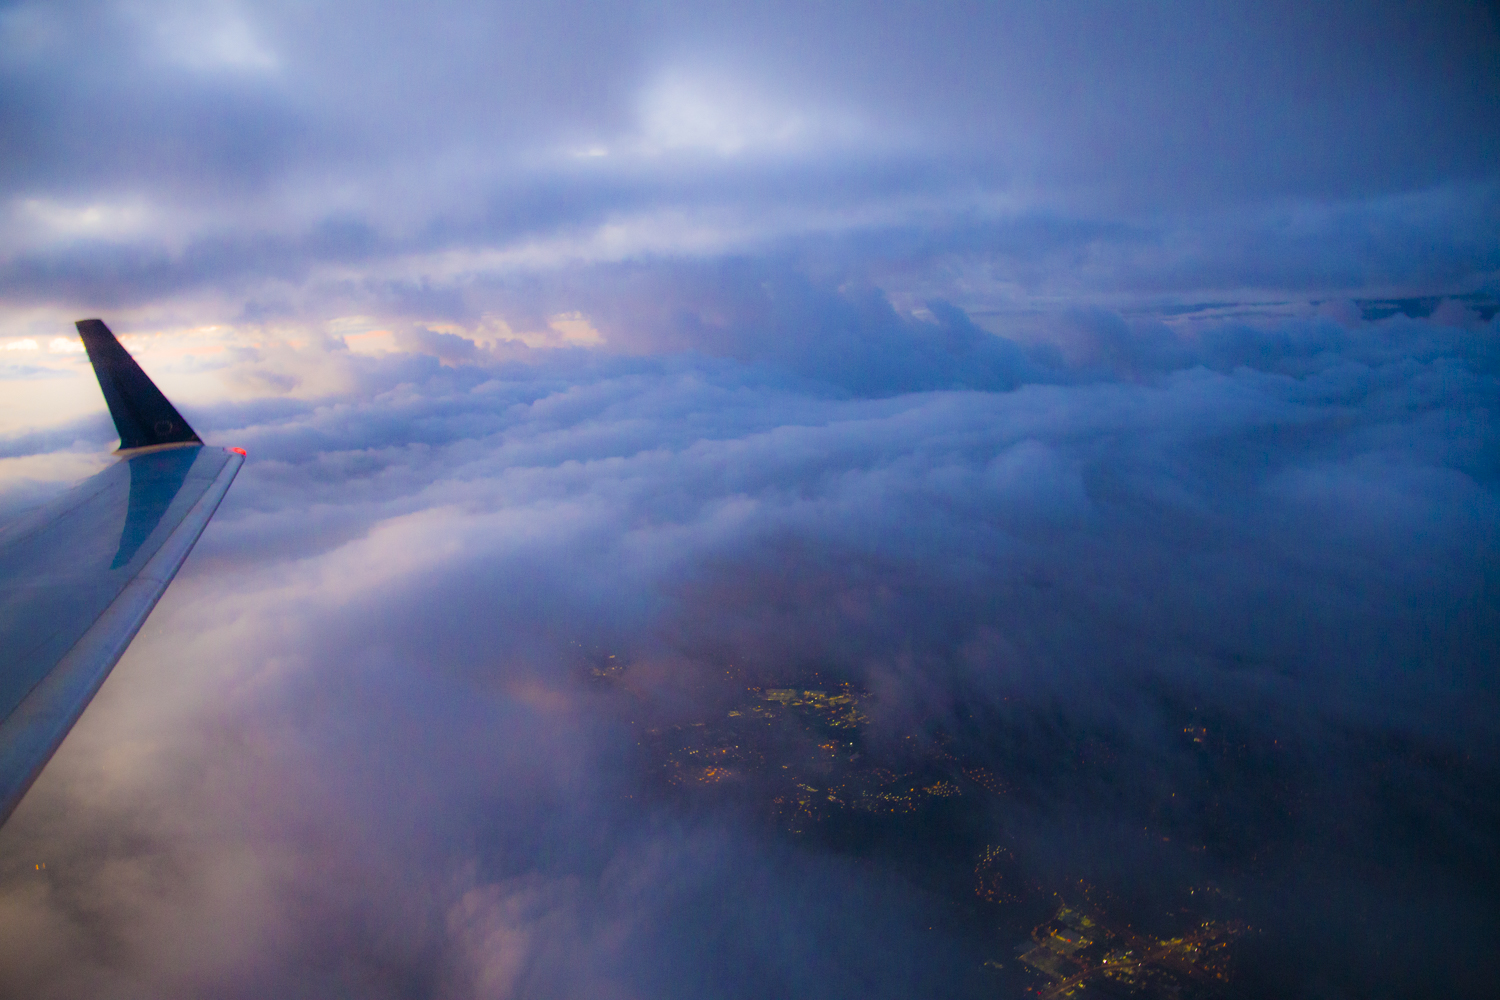 View from the plane during sunrise... fortunate to have a window!